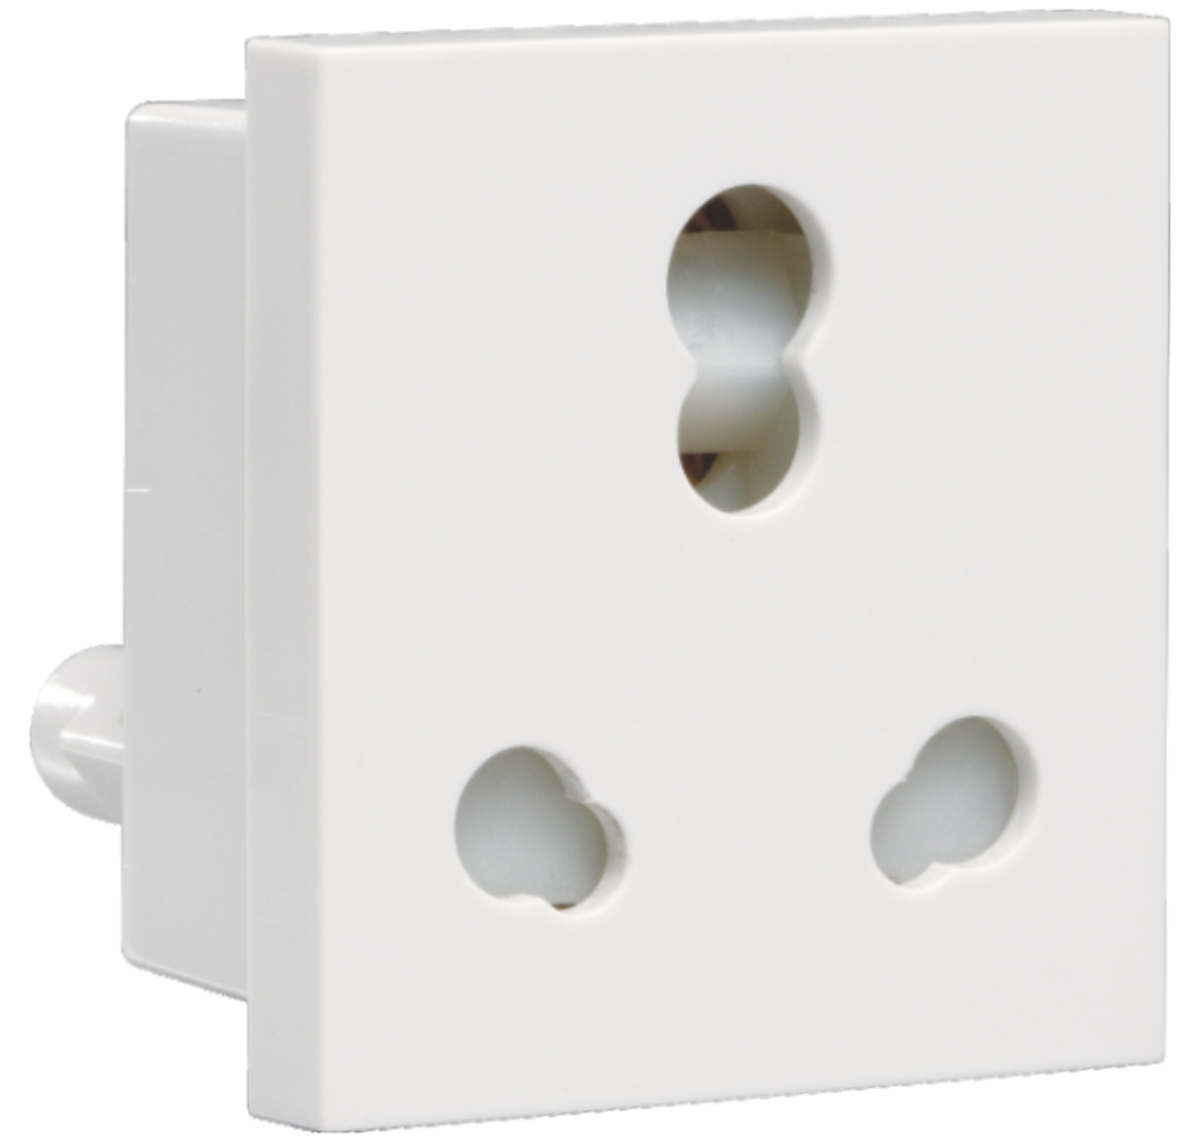 Crabtree - 6 A - 16 A 3 pin combined shuttered socket